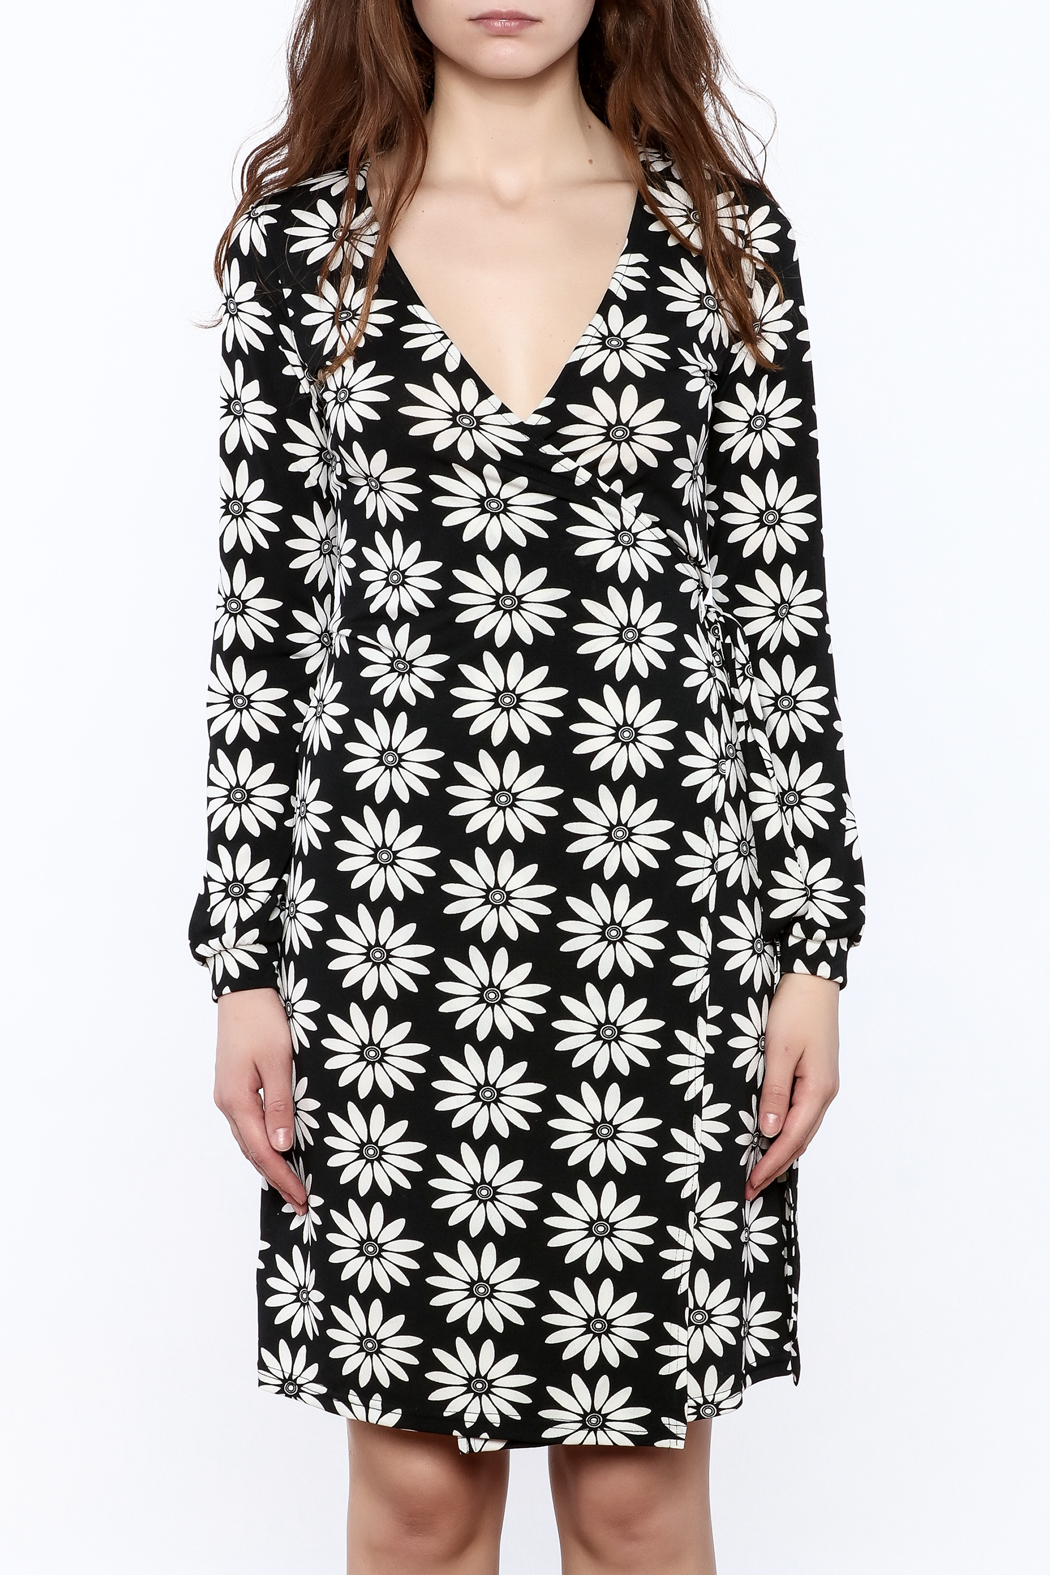 Gina Louise Floral Wrap Dress - Side Cropped Image